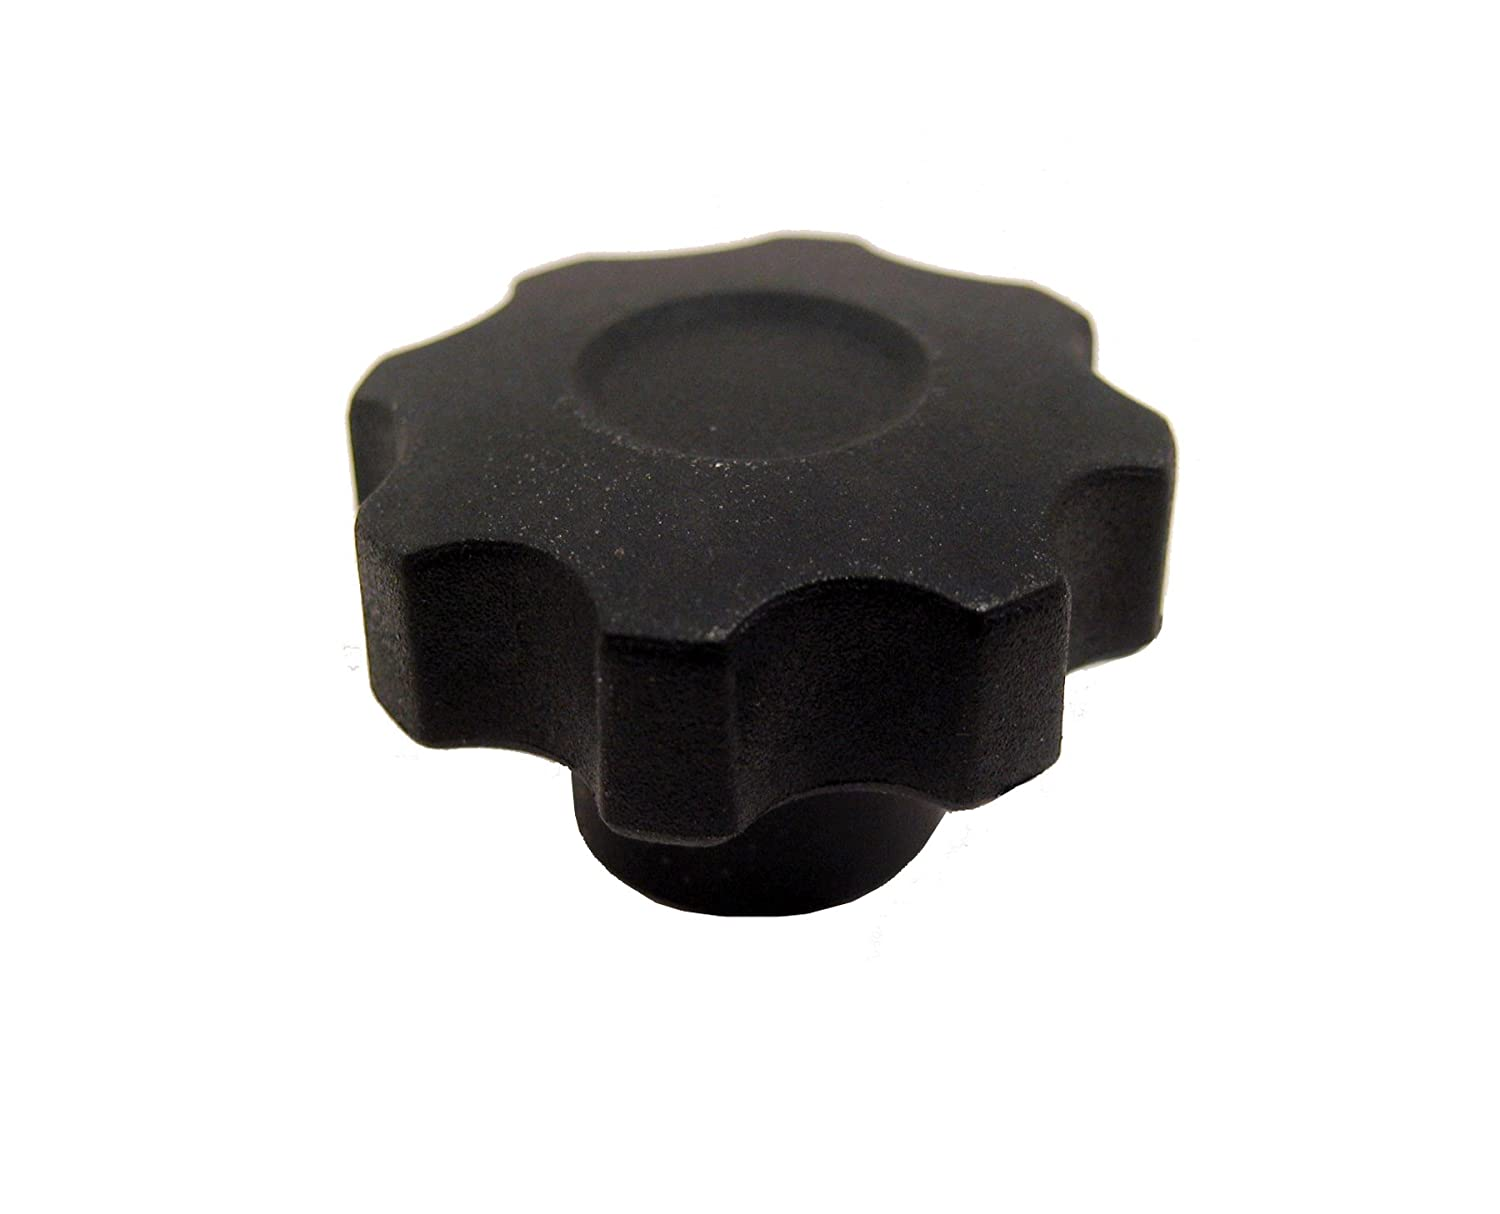 Pack of 1 JW Winco Glass Filled Nylon Plastic Eight Lobed Hand Knob with Tapped Brass Insert 55mm Head Diameter Threaded Hole M10 x 1.5 Thread Size x 15mm Thread Depth